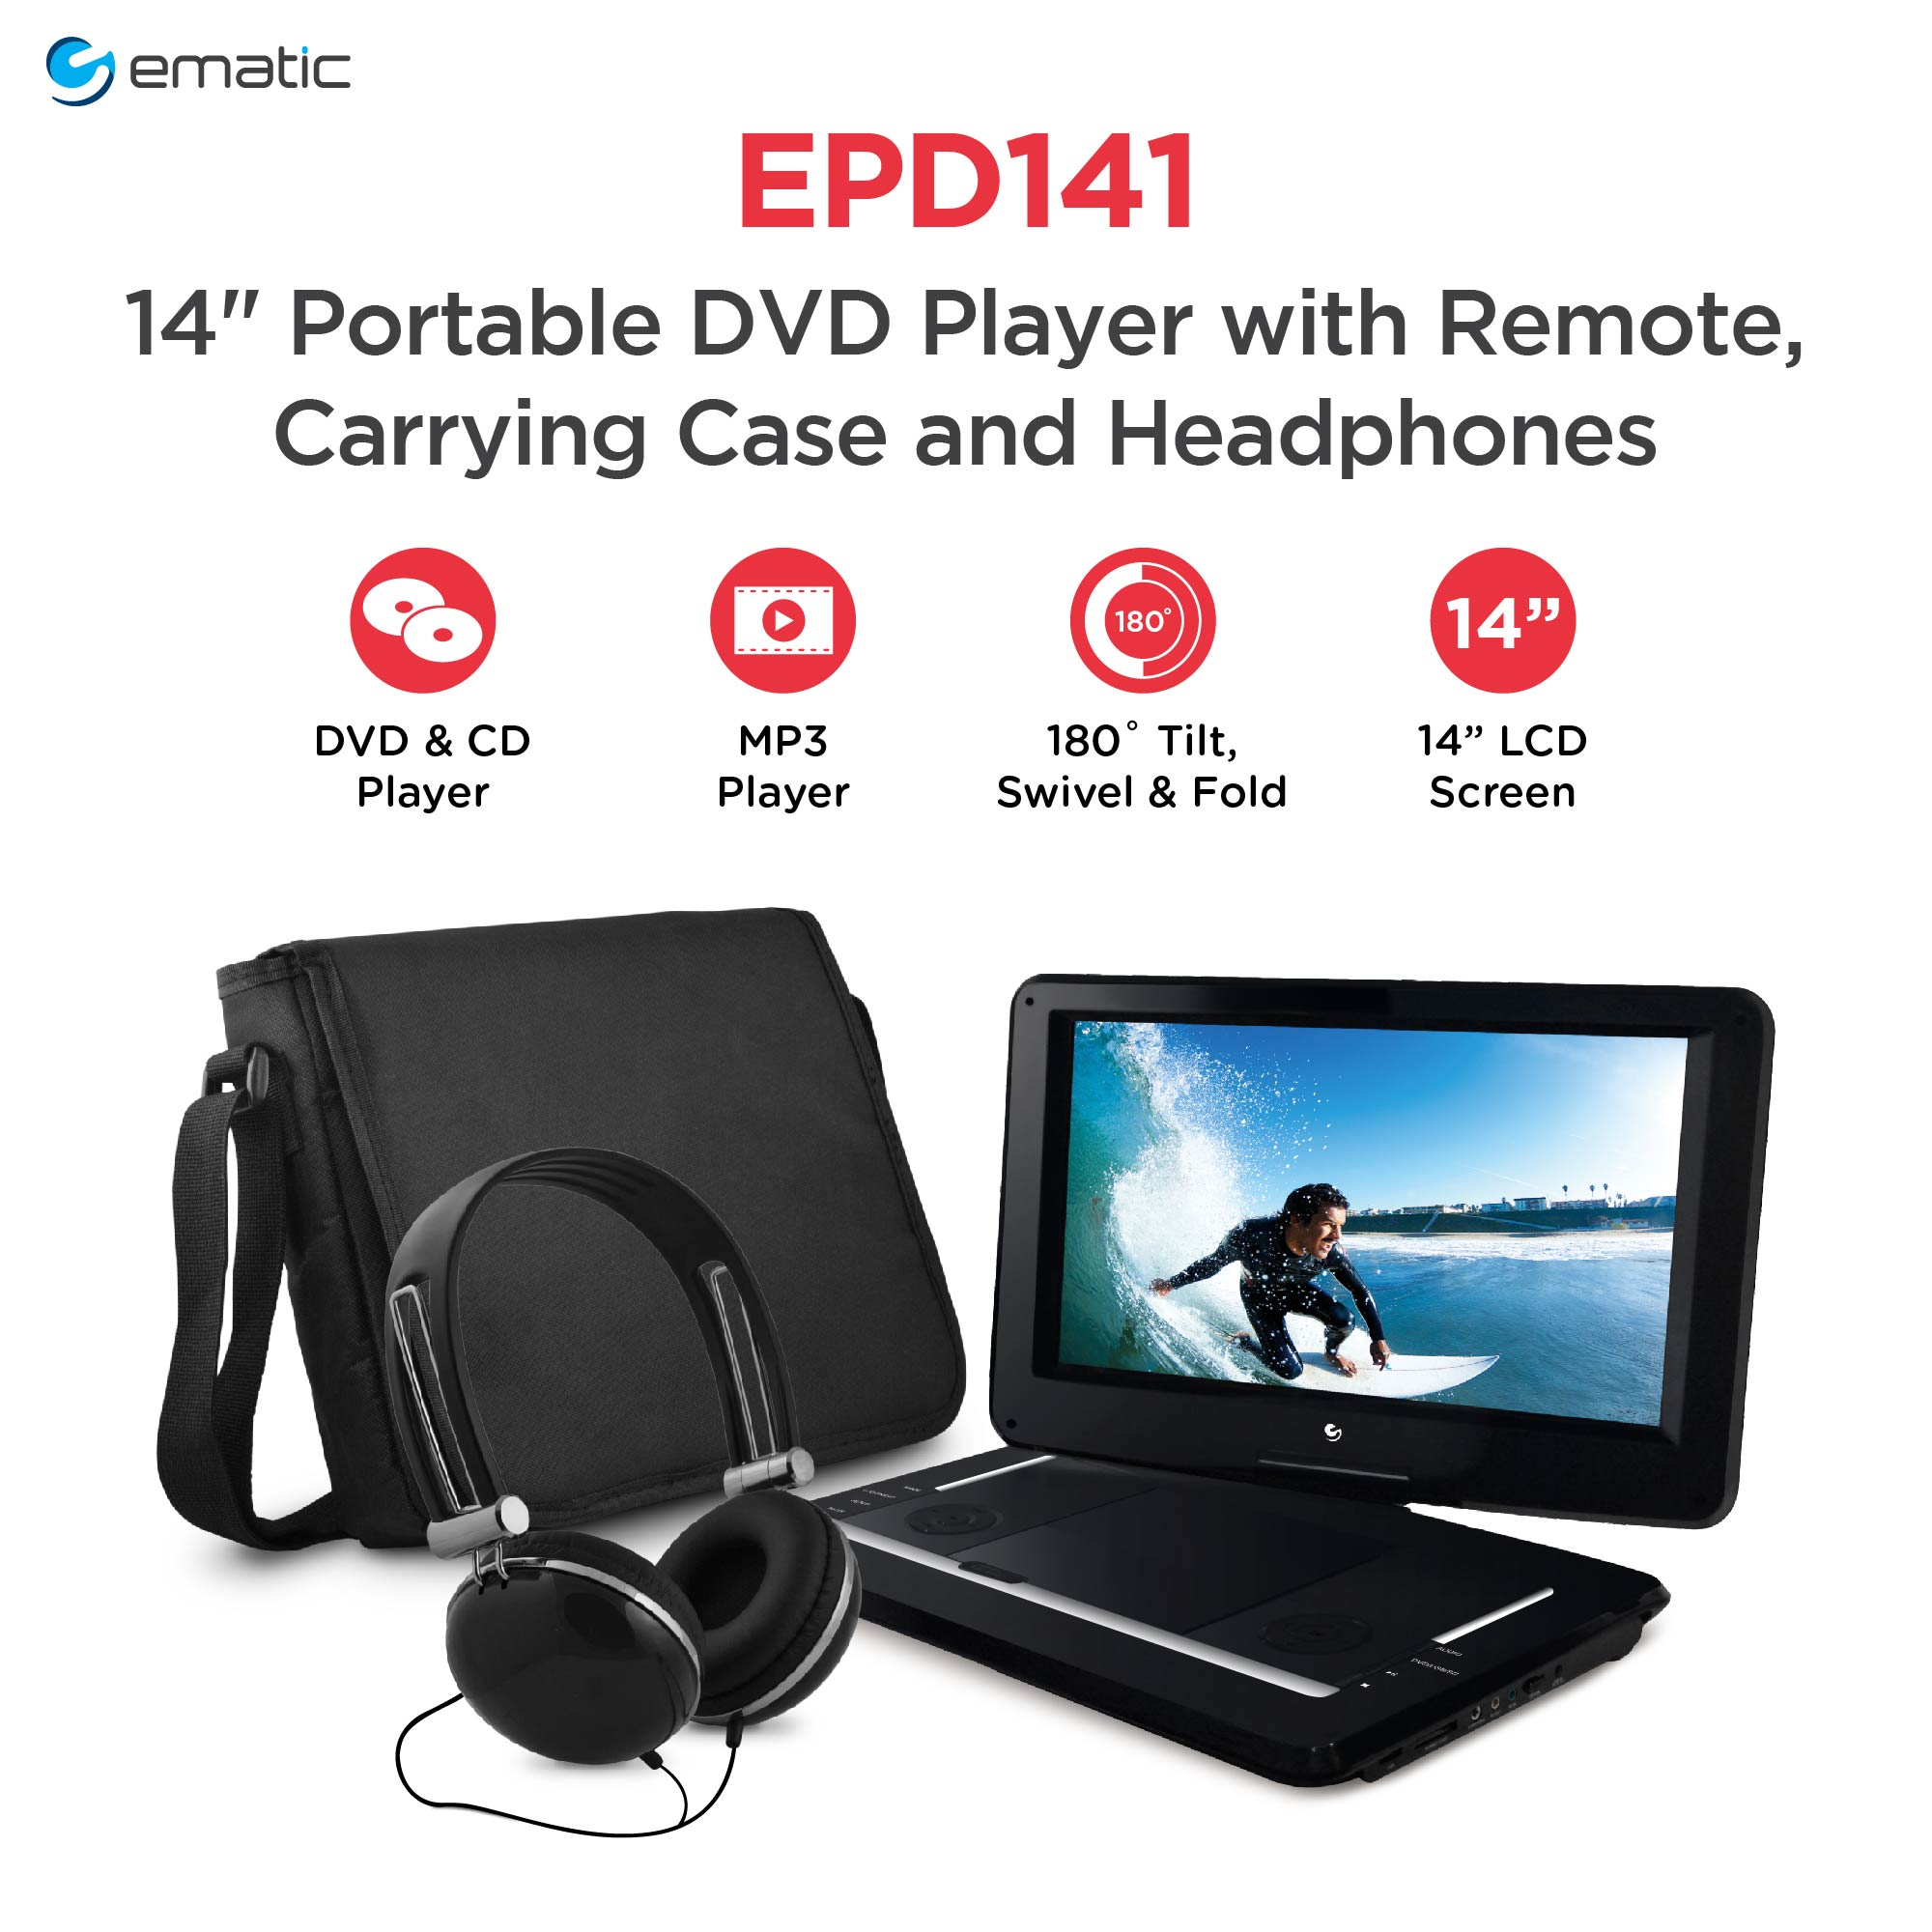 """Ematic 14"""" Portable DVD Player with Remote, Carrying Case and Headphones"""